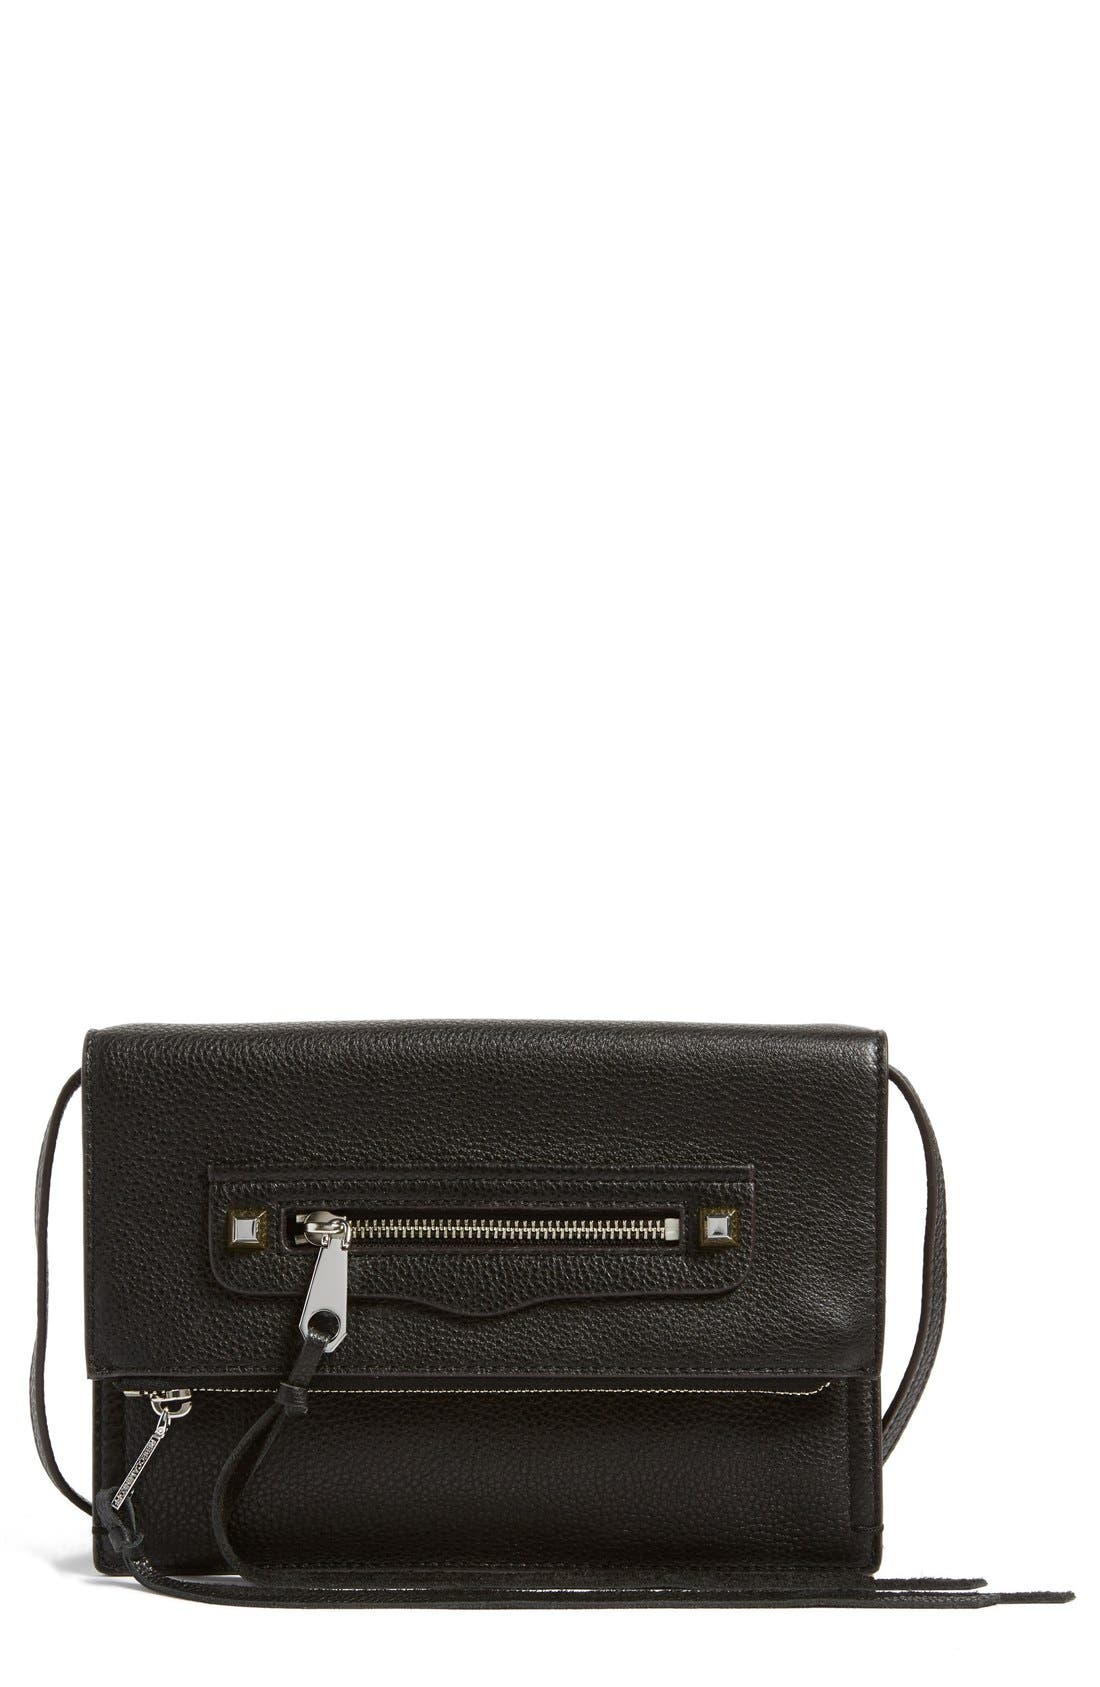 Main Image - Rebecca Minkoff Small Regan Crossbody Clutch